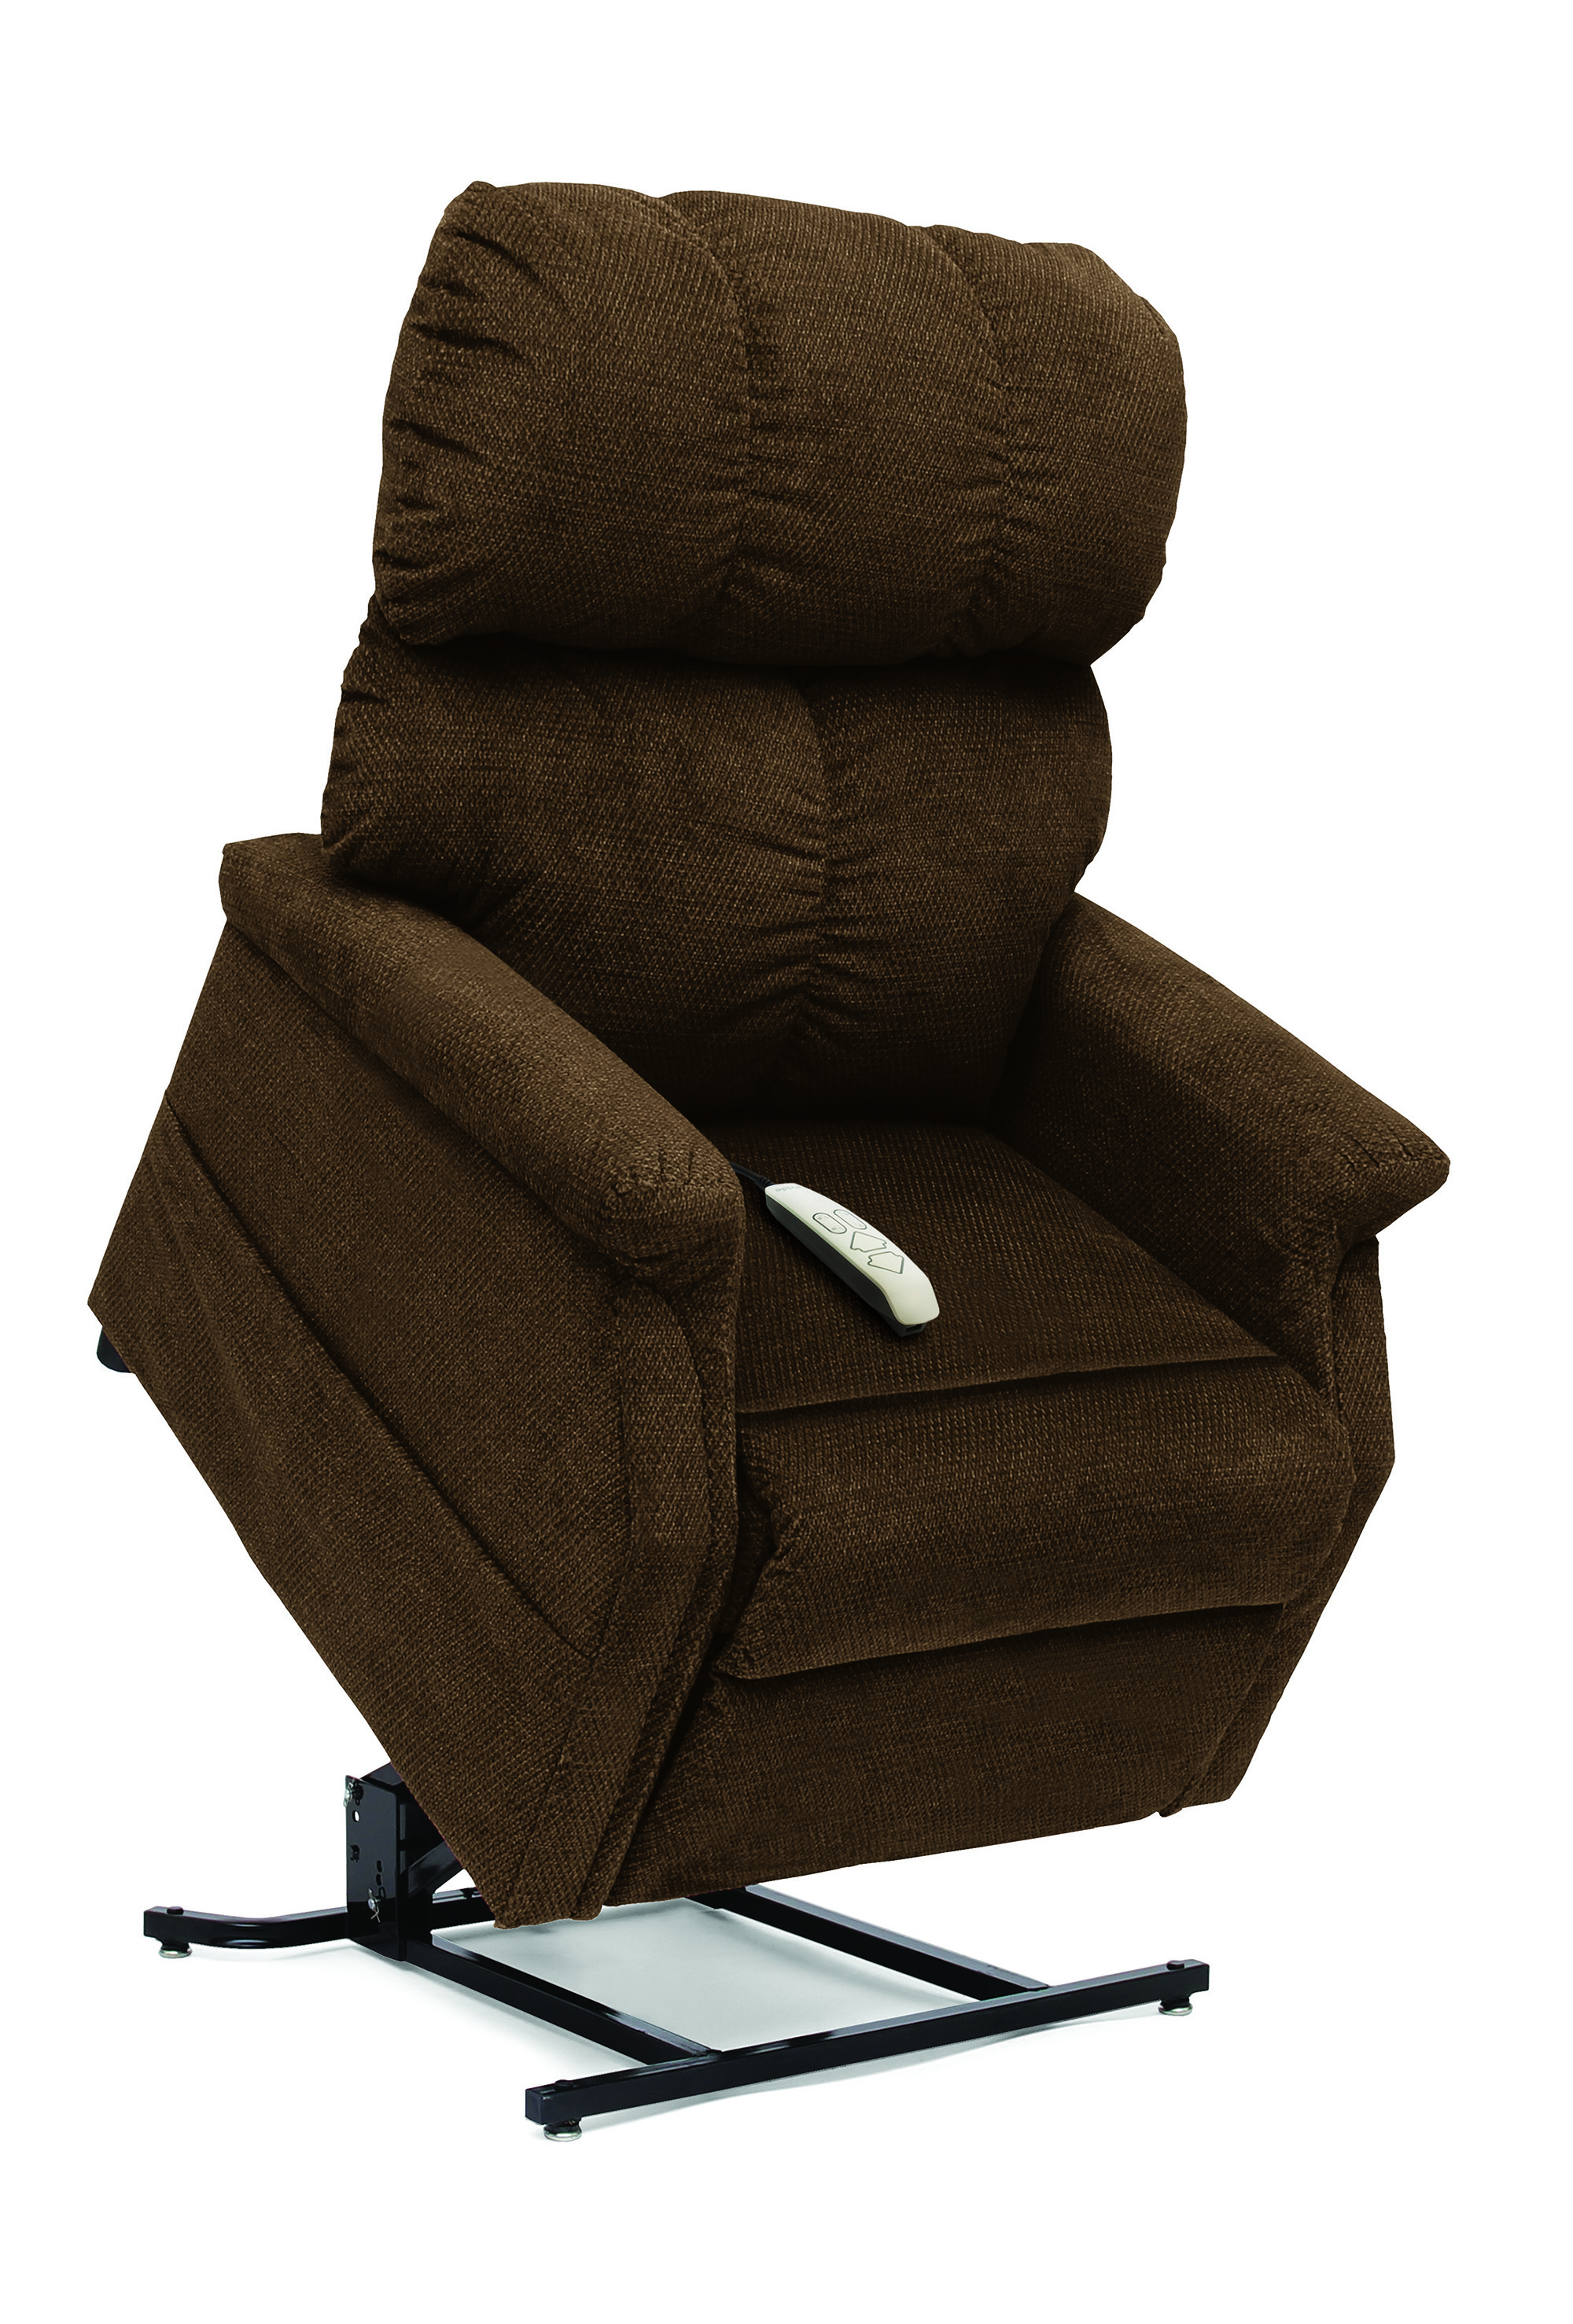 pride lift chairs oversized with ottoman infinity collection chair split back mccann 39s